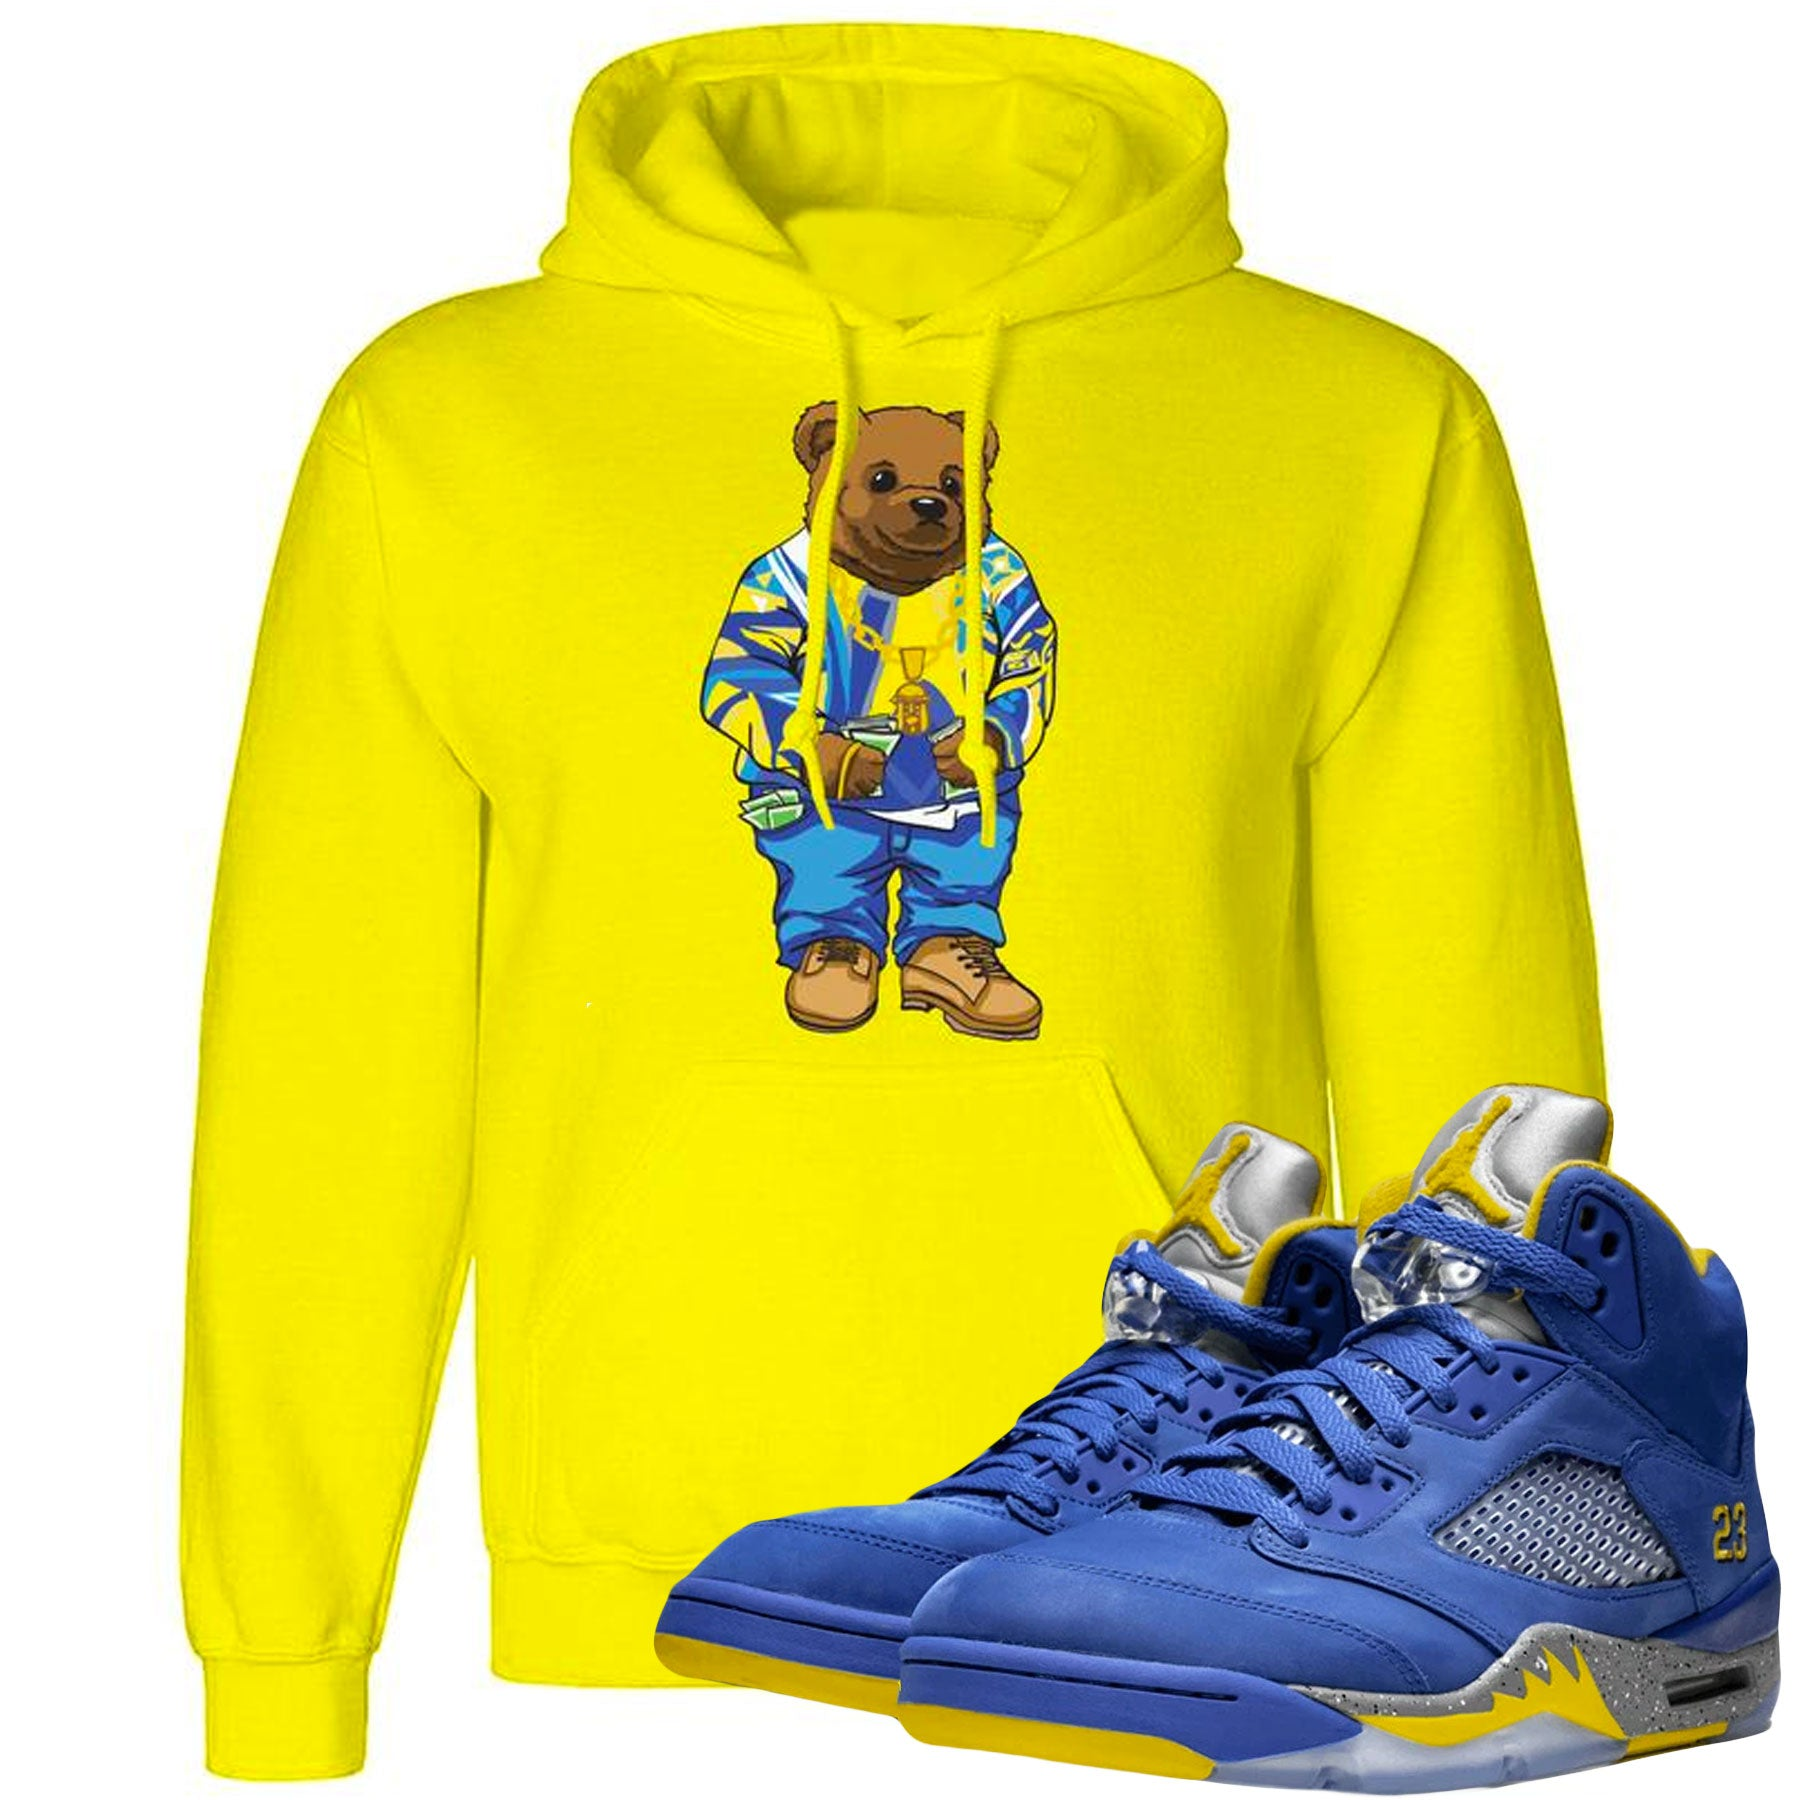 7d041d742bea83 Jordan 5 Alternate Laney JSP Sneaker Matching Biggie Bear Yellow Hoodie